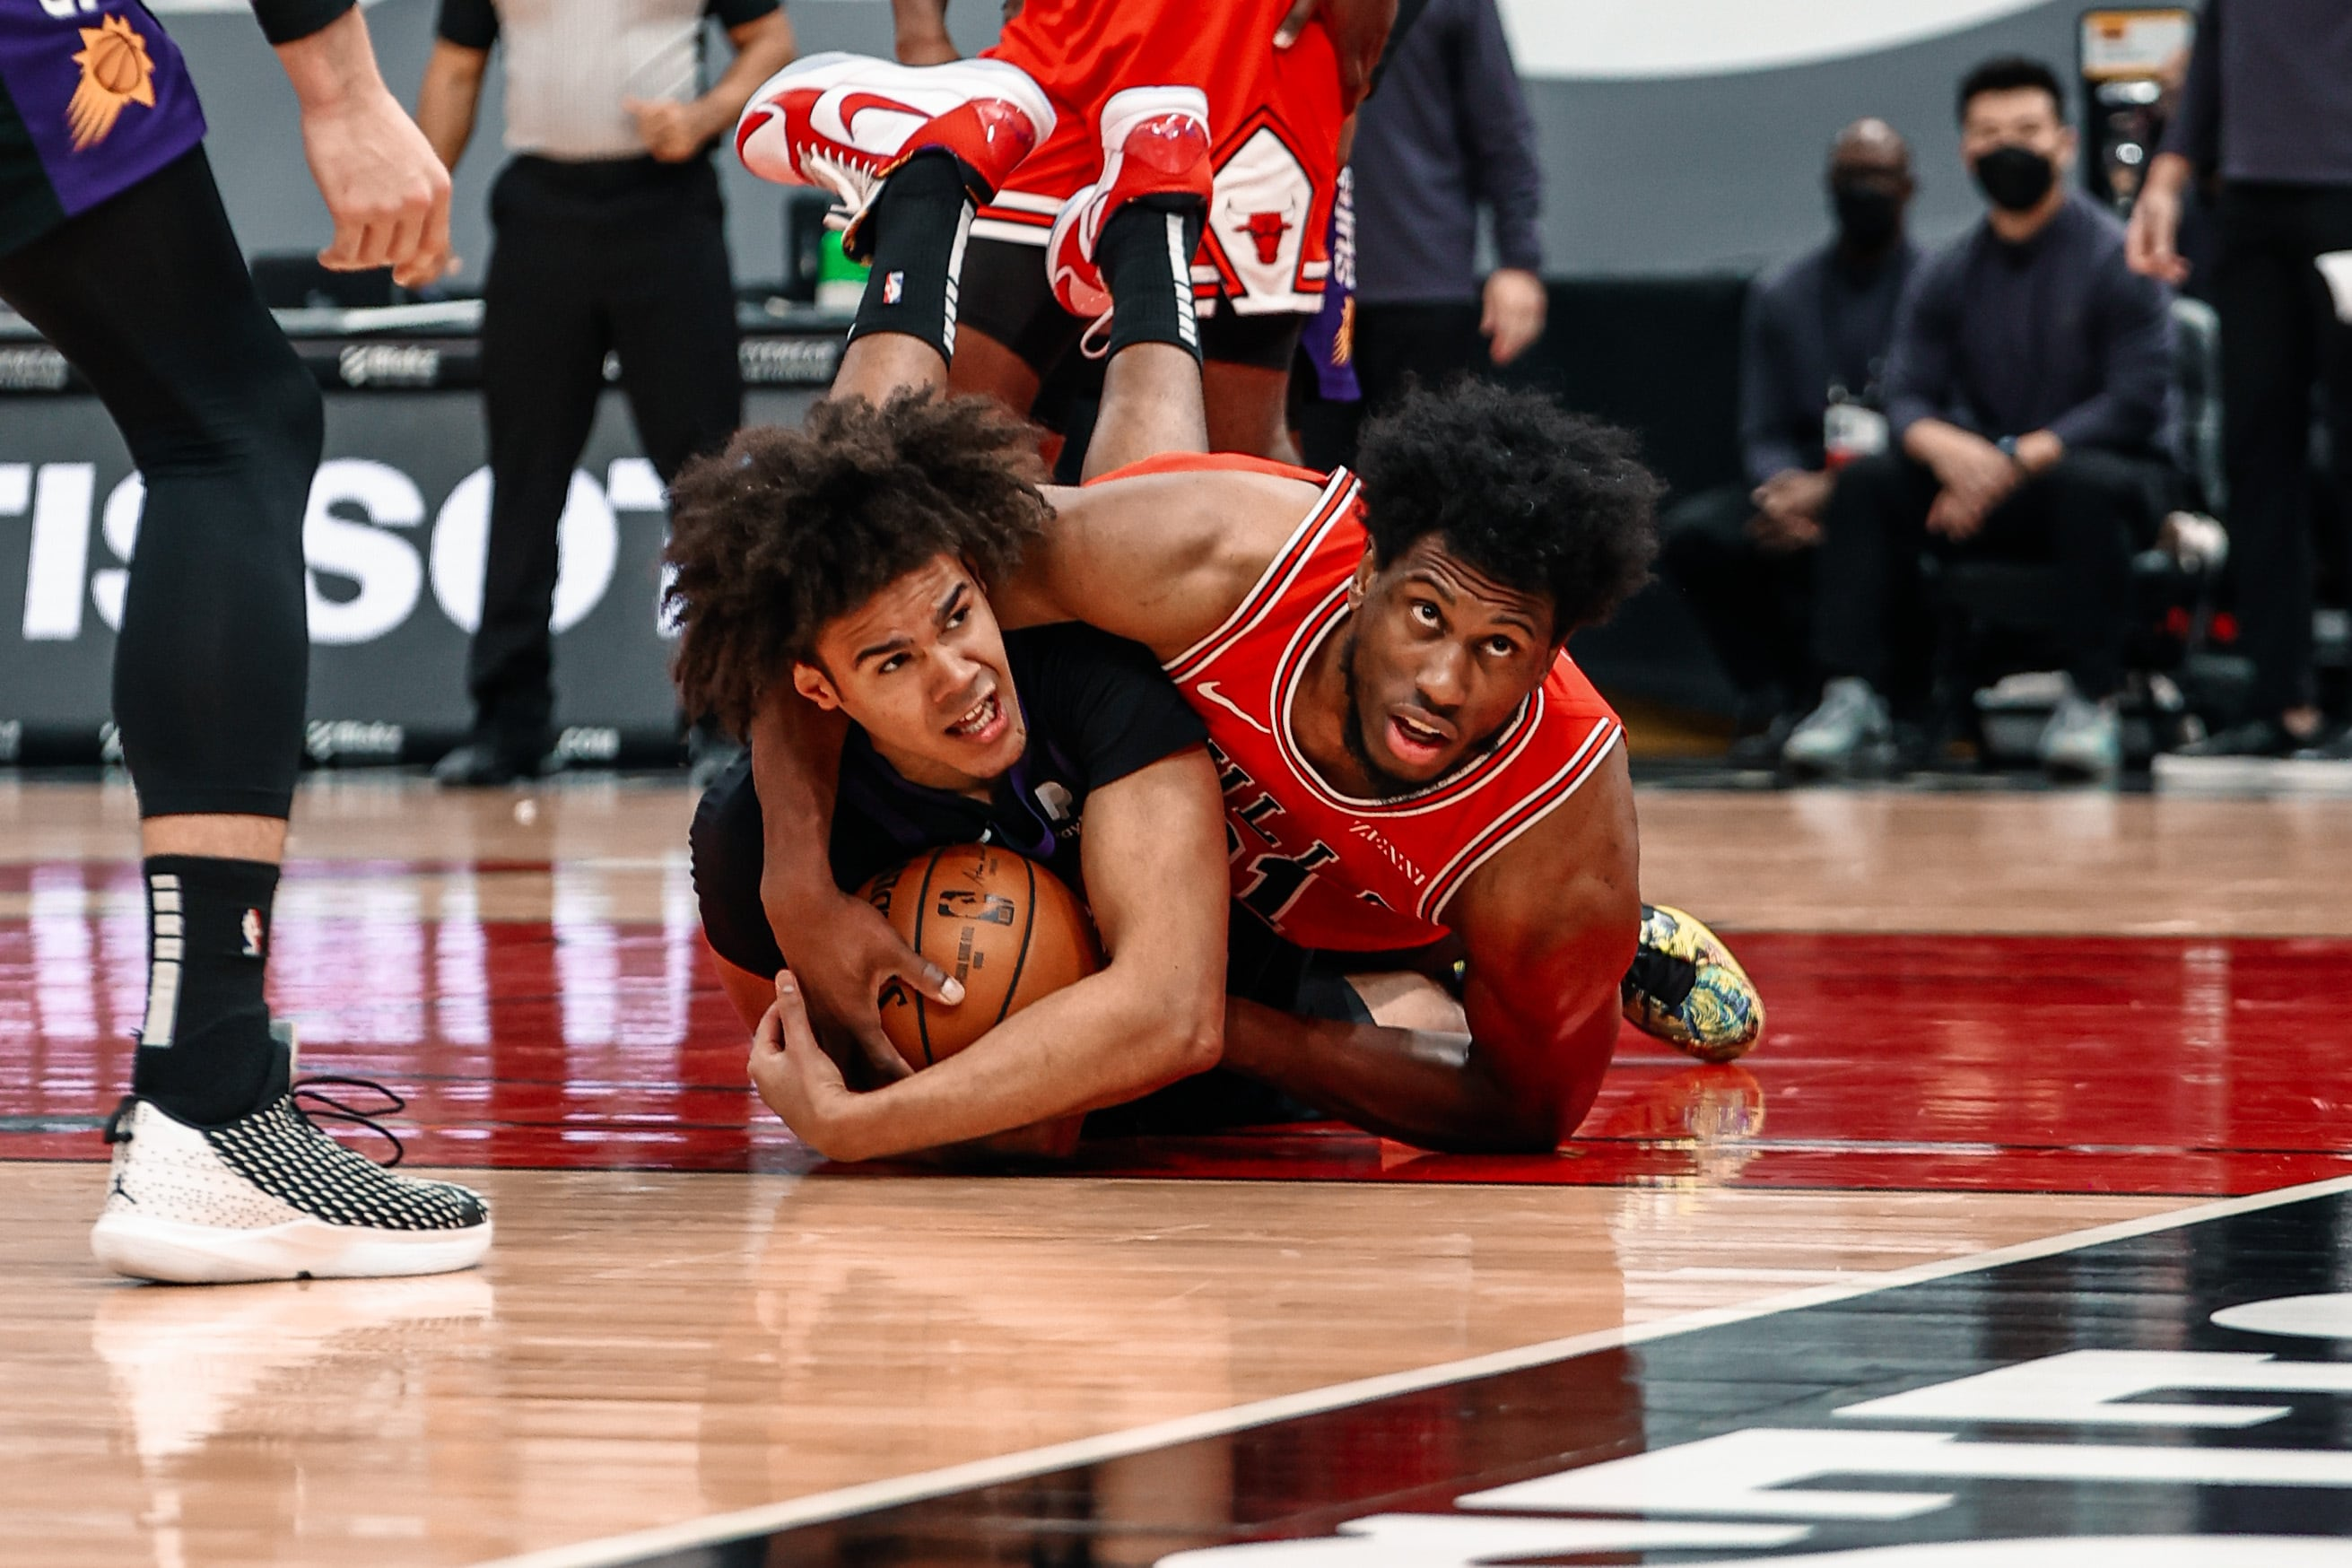 Thad Young dives on the floor for a loose ball with Phoenix's Cameron Johnson